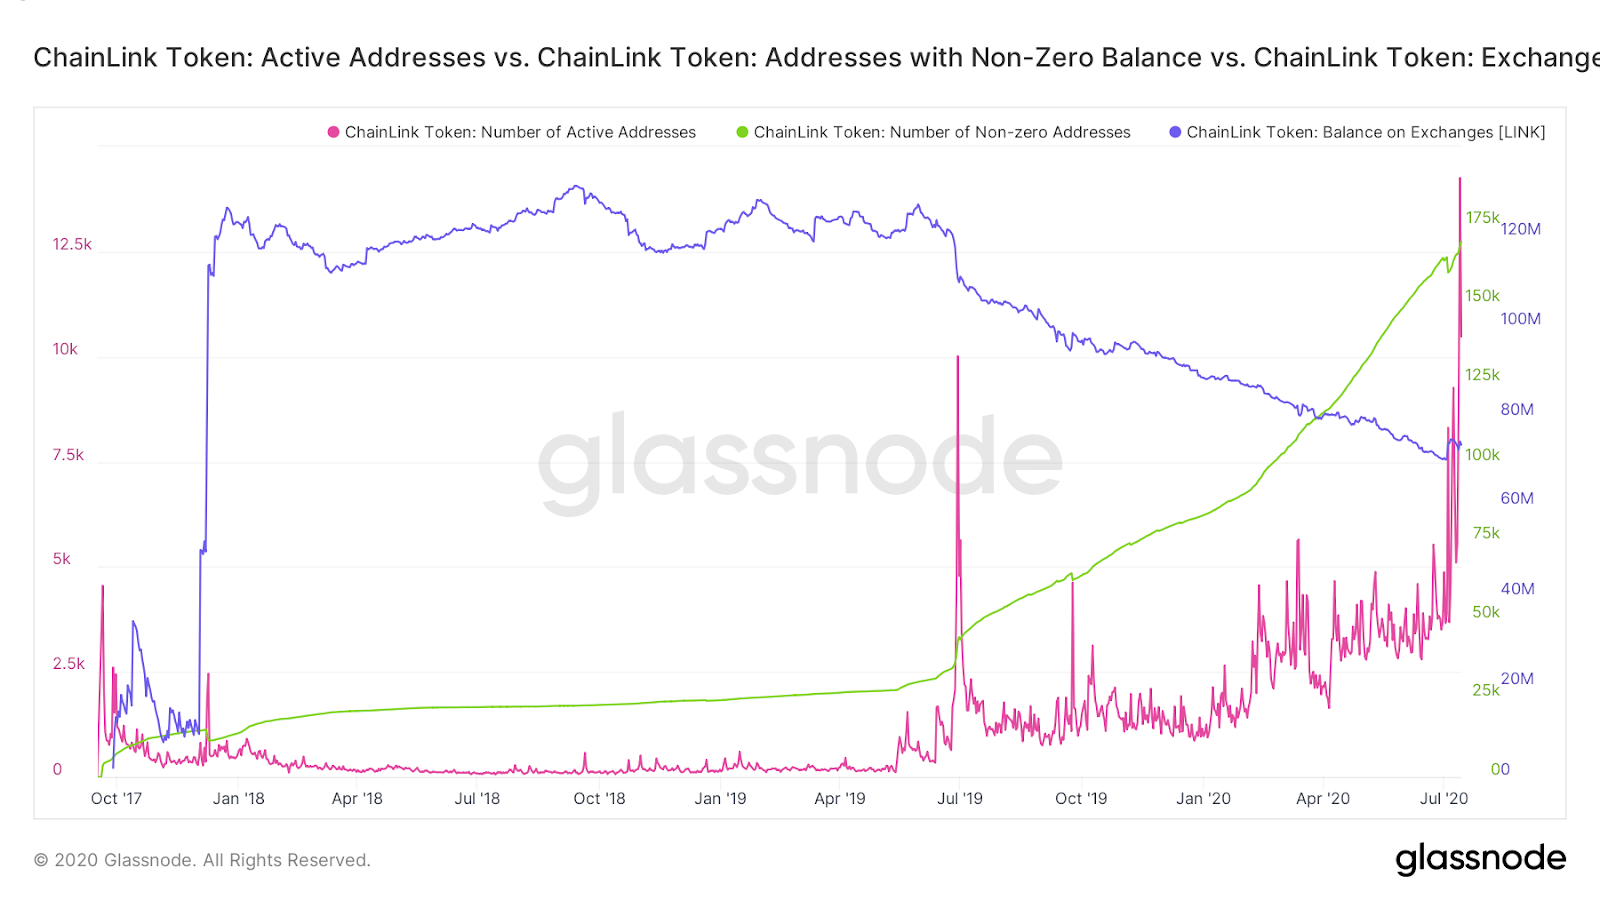 LINK active addresses, addresses with non-zero balance & exchange balances